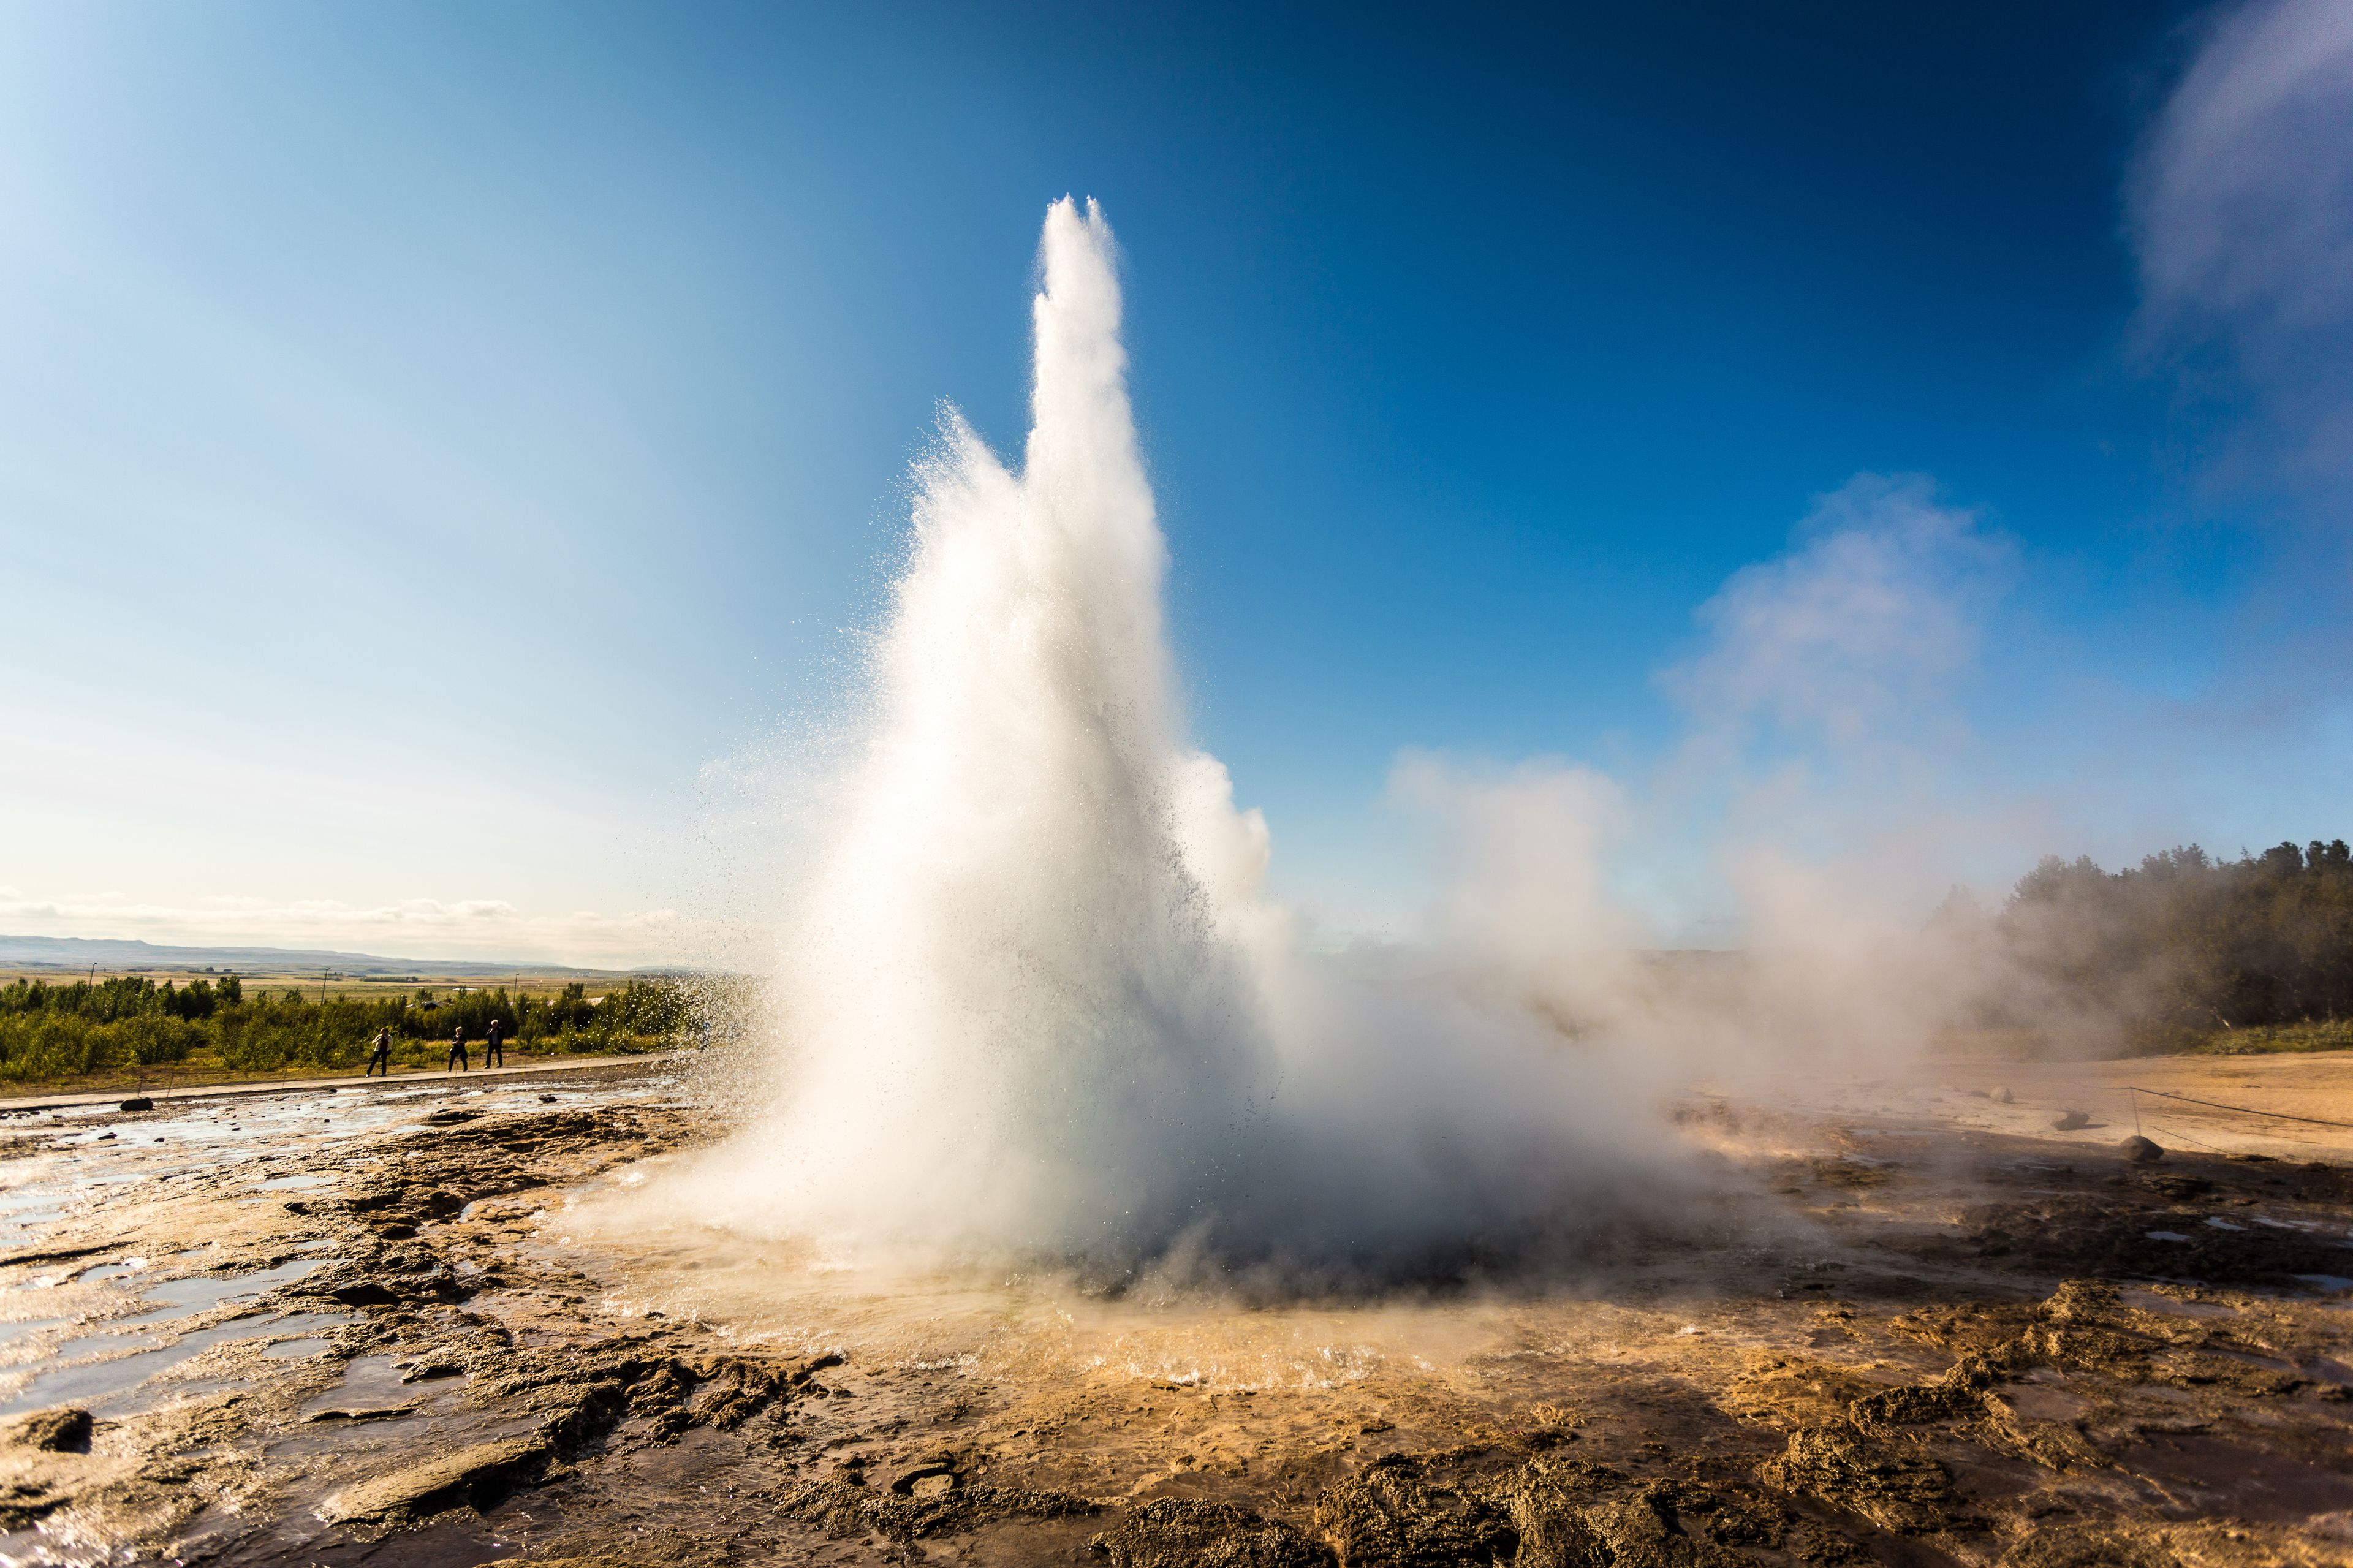 Stunning view of Geysir in Iceland